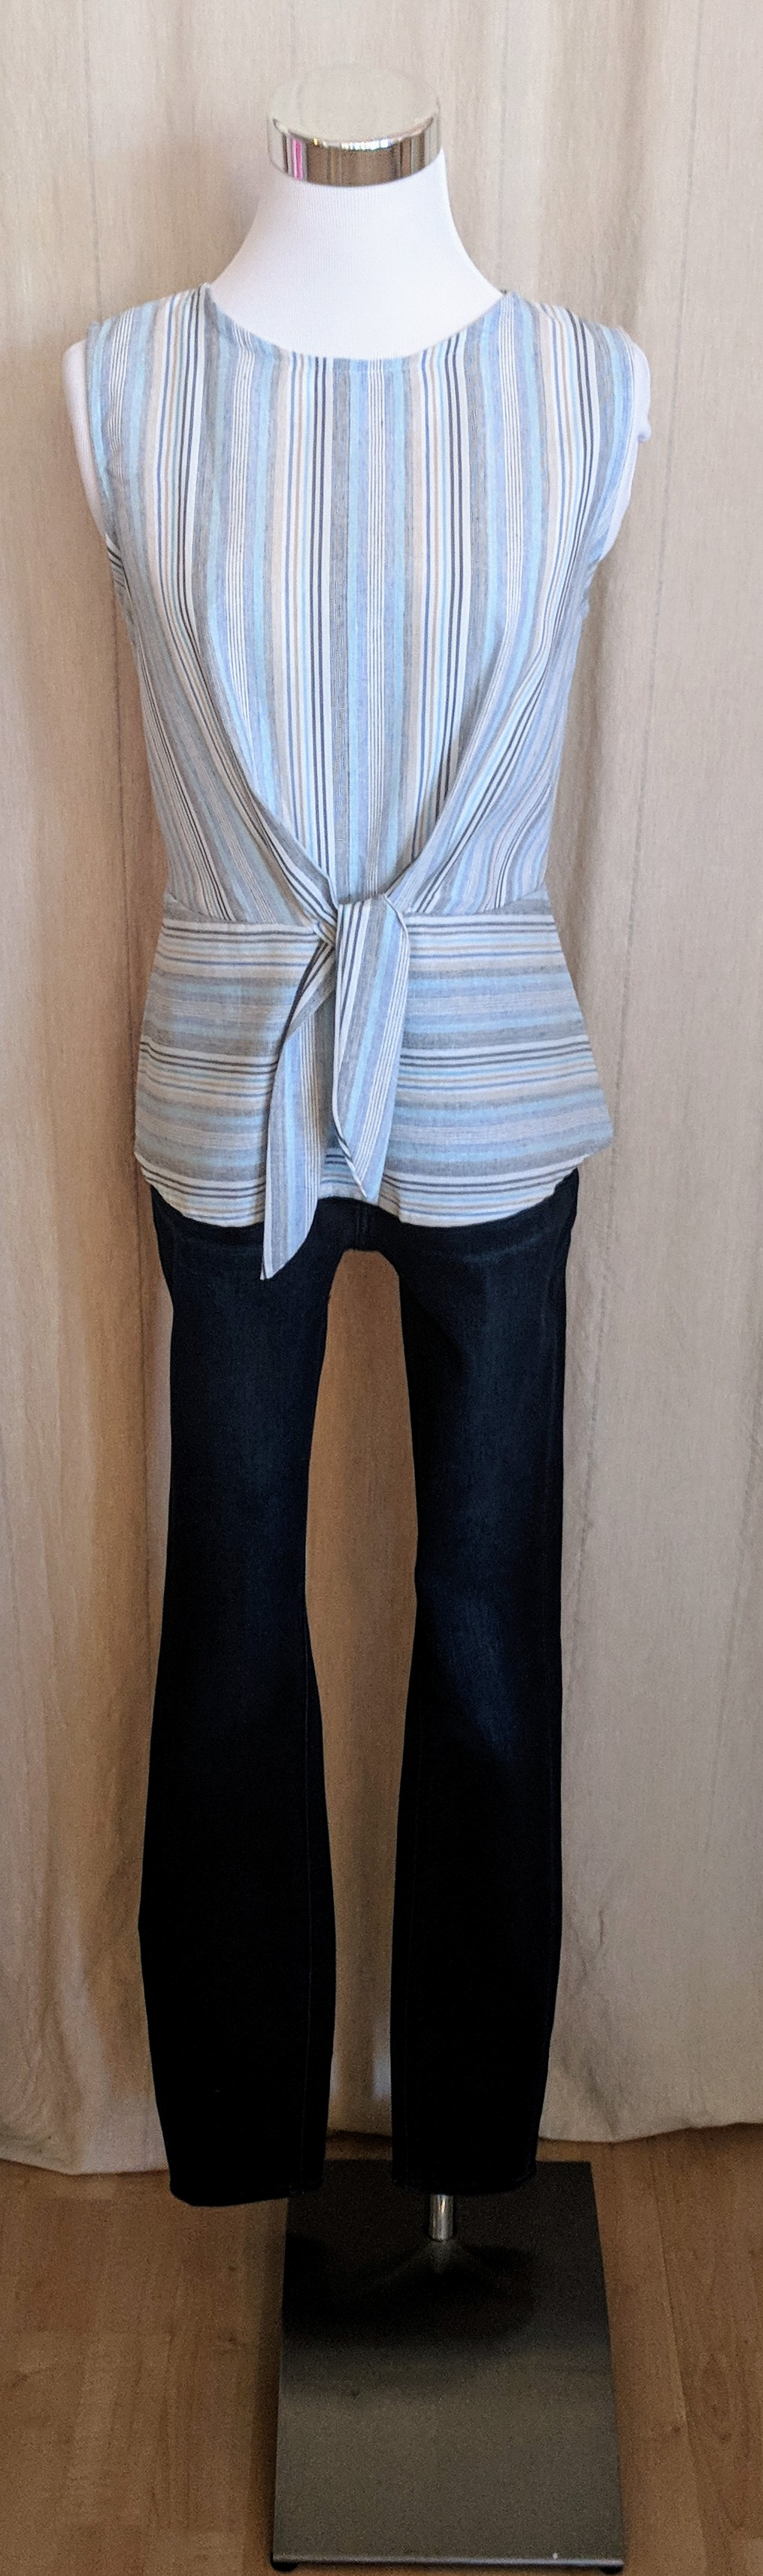 Blue and white stripe tank top with tie detail on front.